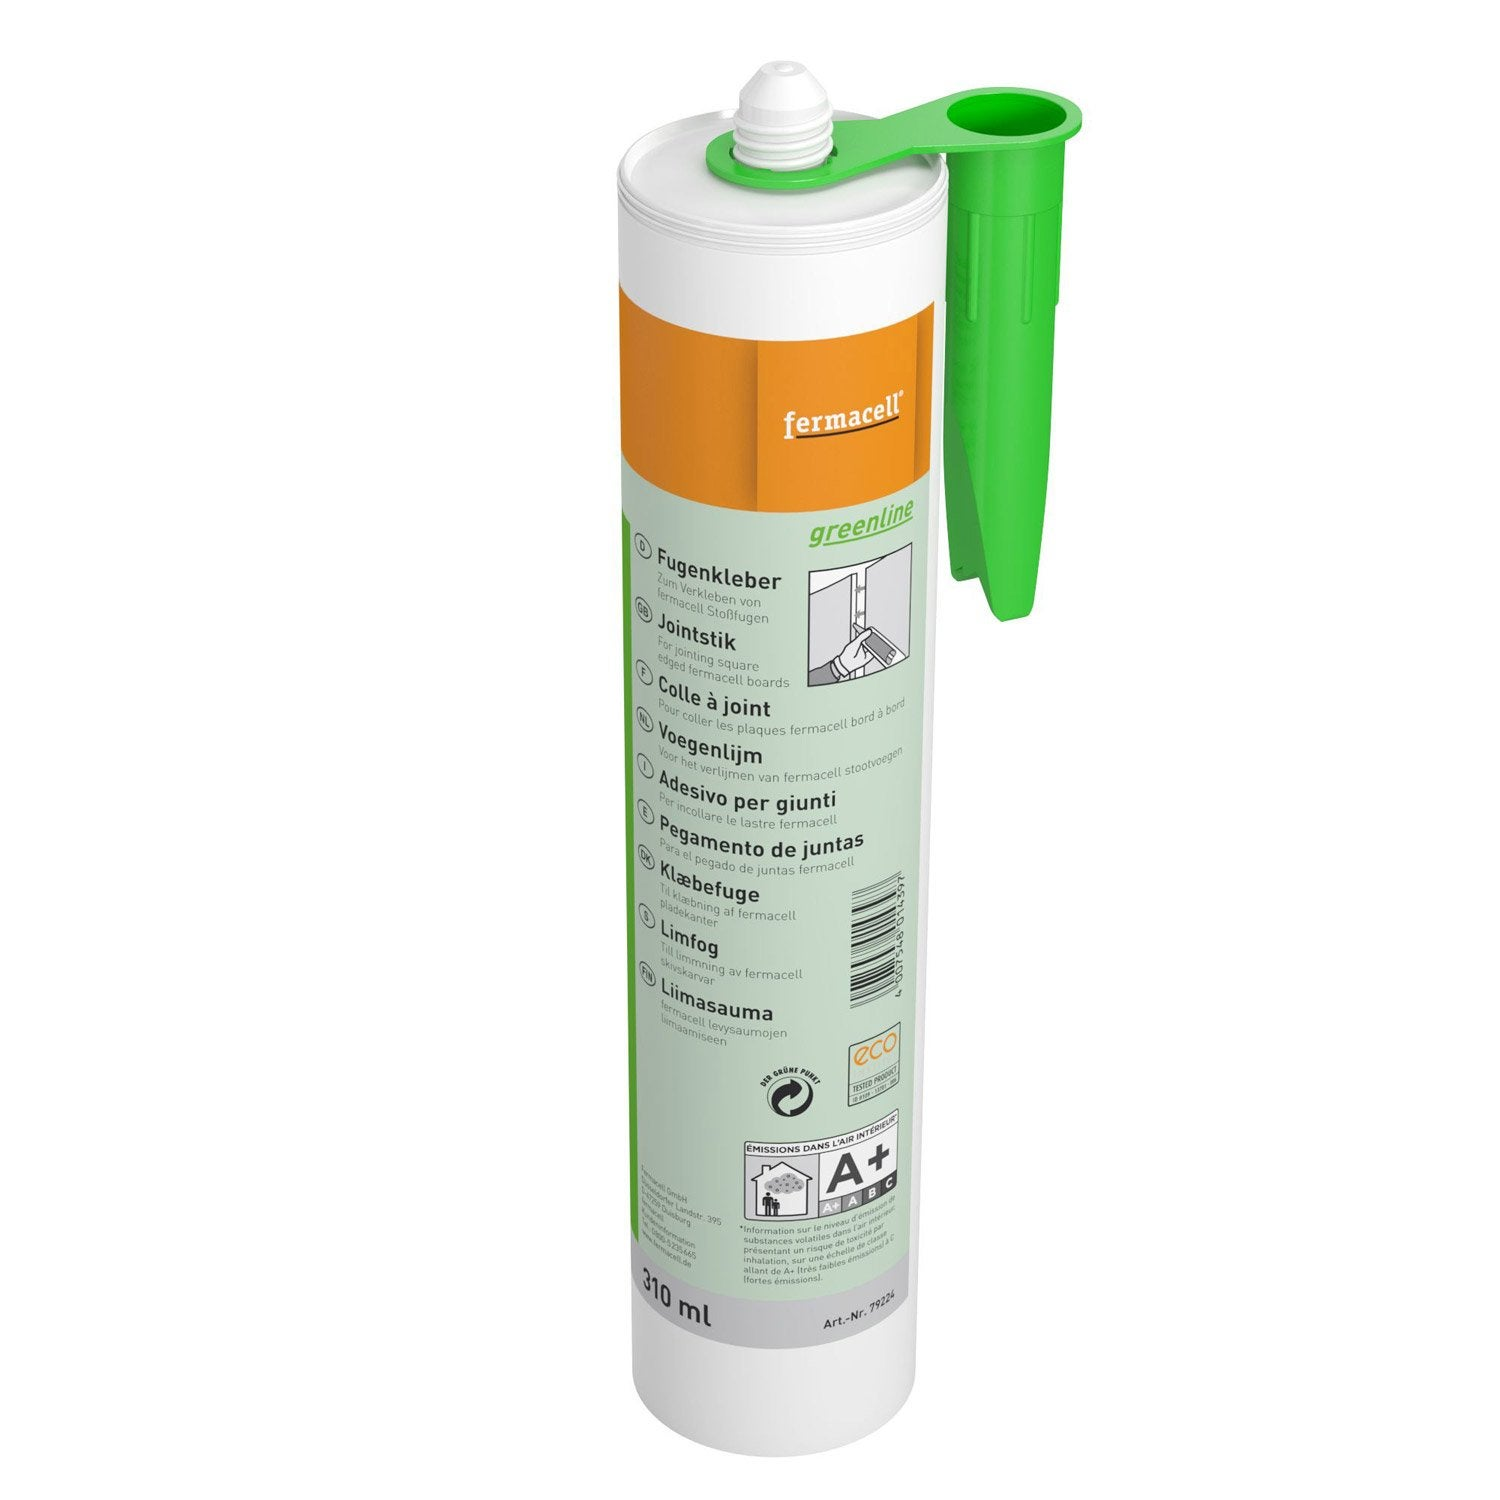 Colle joint greenline fermacell kg leroy merlin - Joint frigo ne colle plus ...